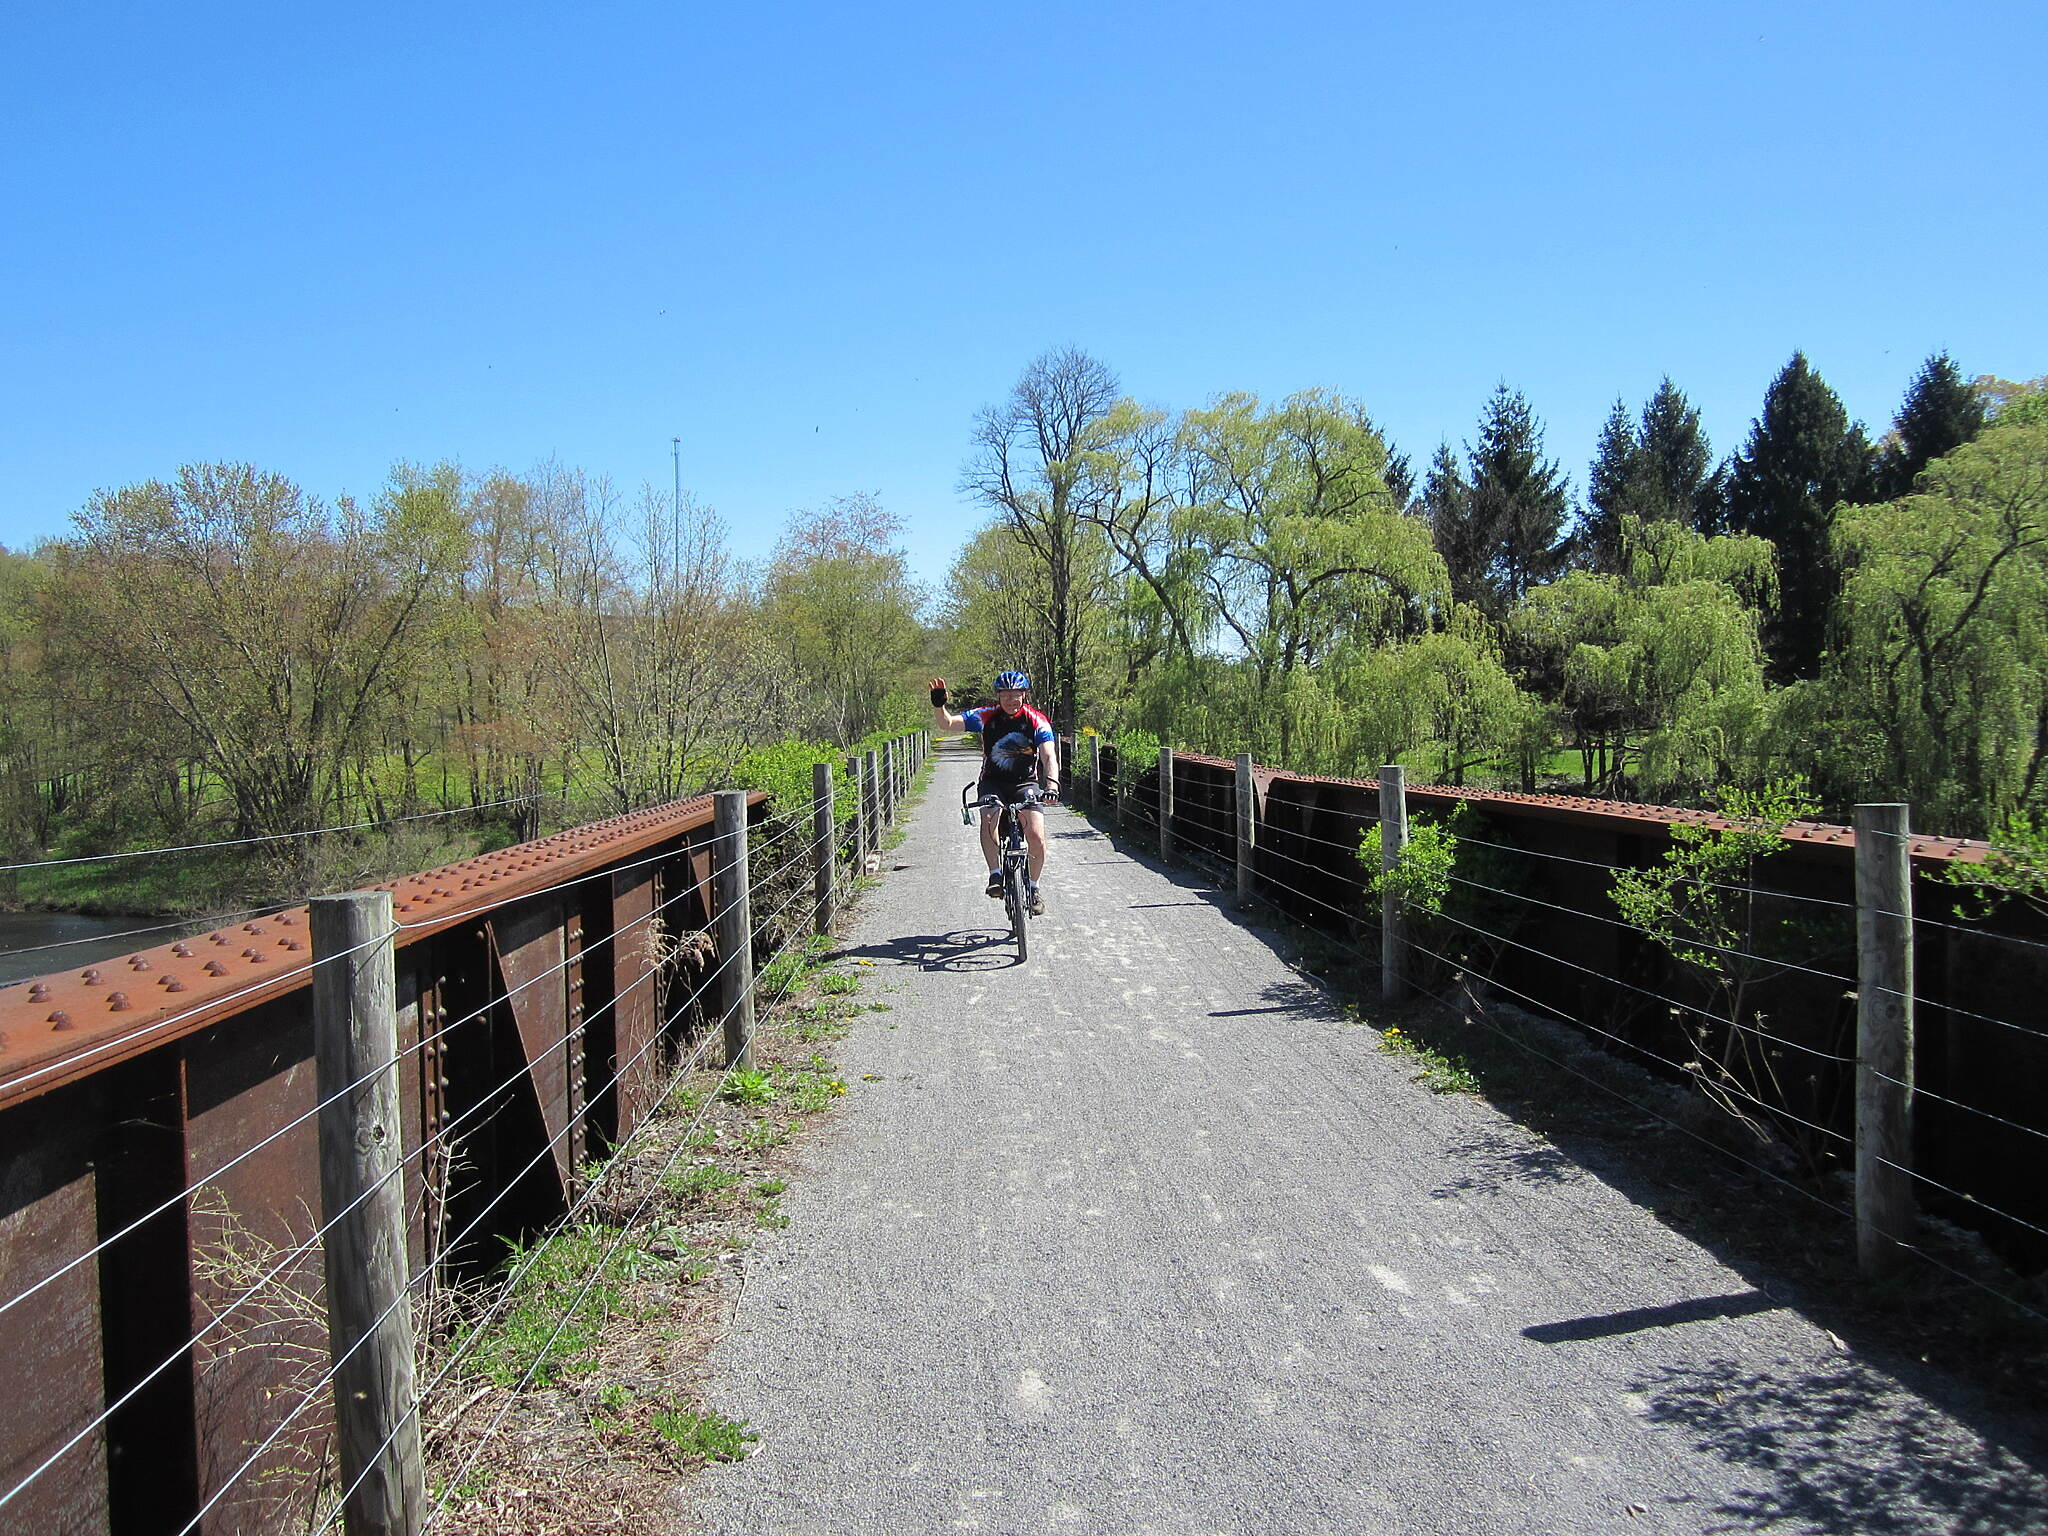 David S. Ammerman Trail (formerly Clearfield to Grampian Trail) Crossing the River West Branch Susquehanna River between Clearfield and Curwensville.